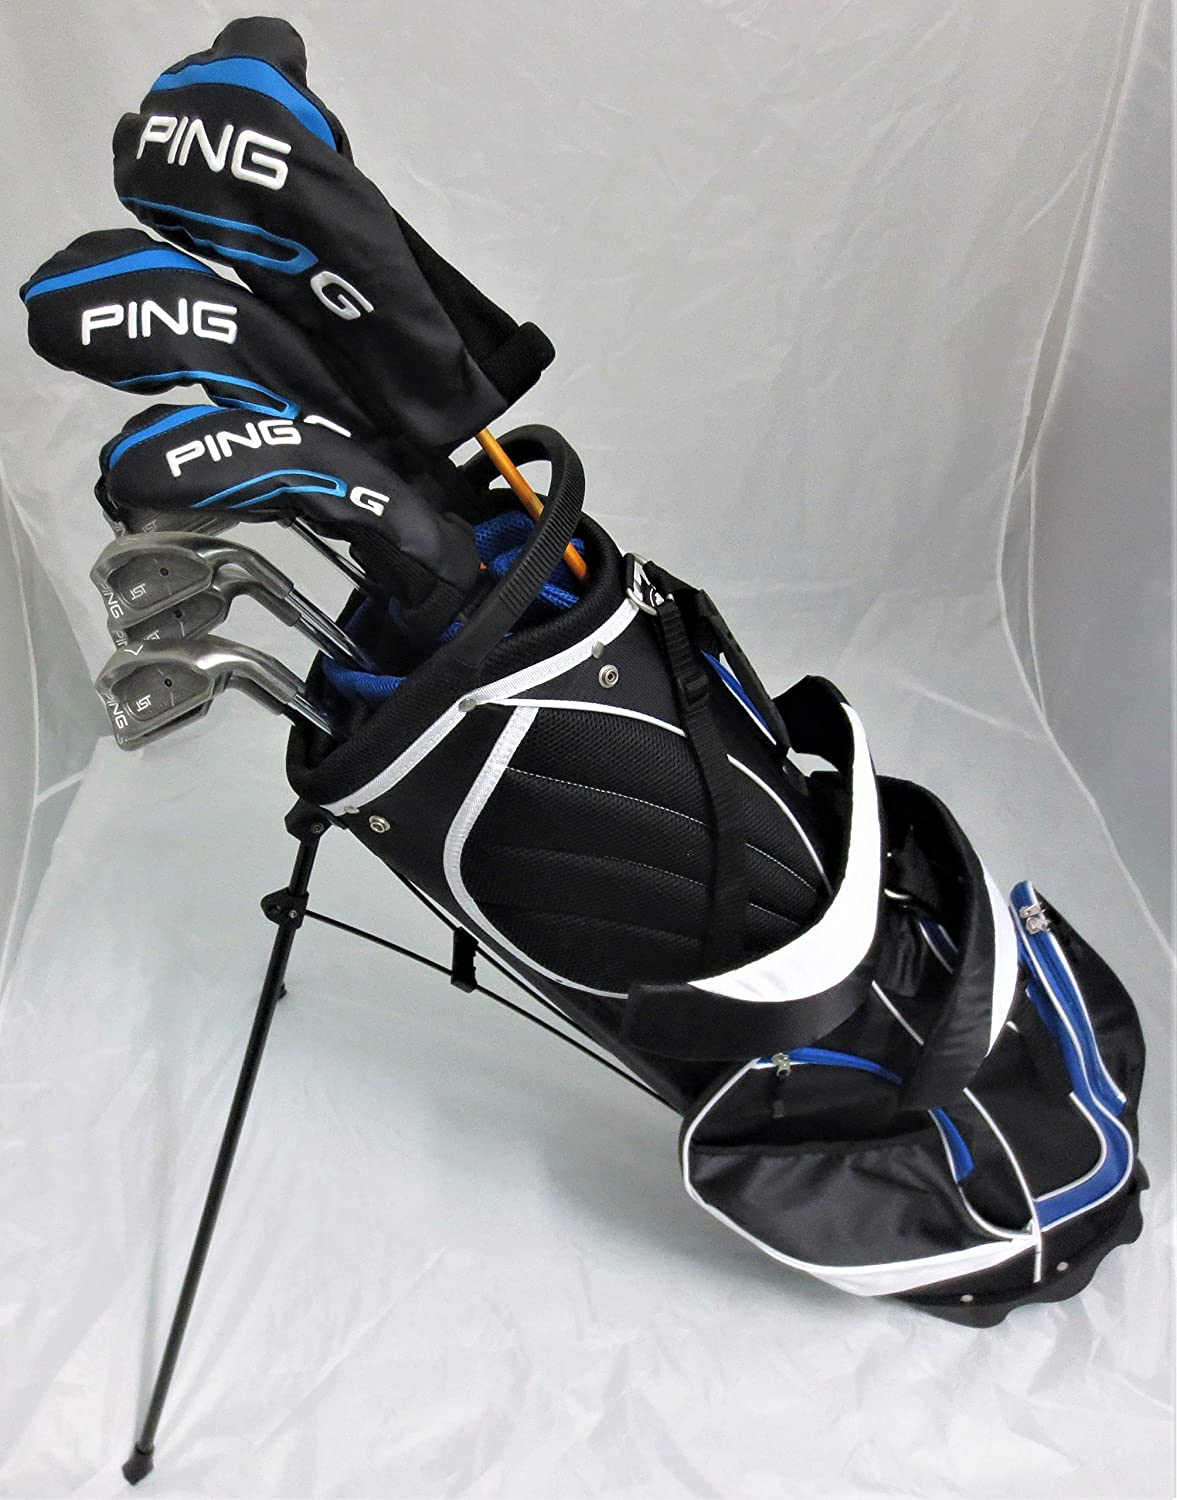 Amazoncom Mens Ping Complete Golf Set Driver Wood Hybrid Irons